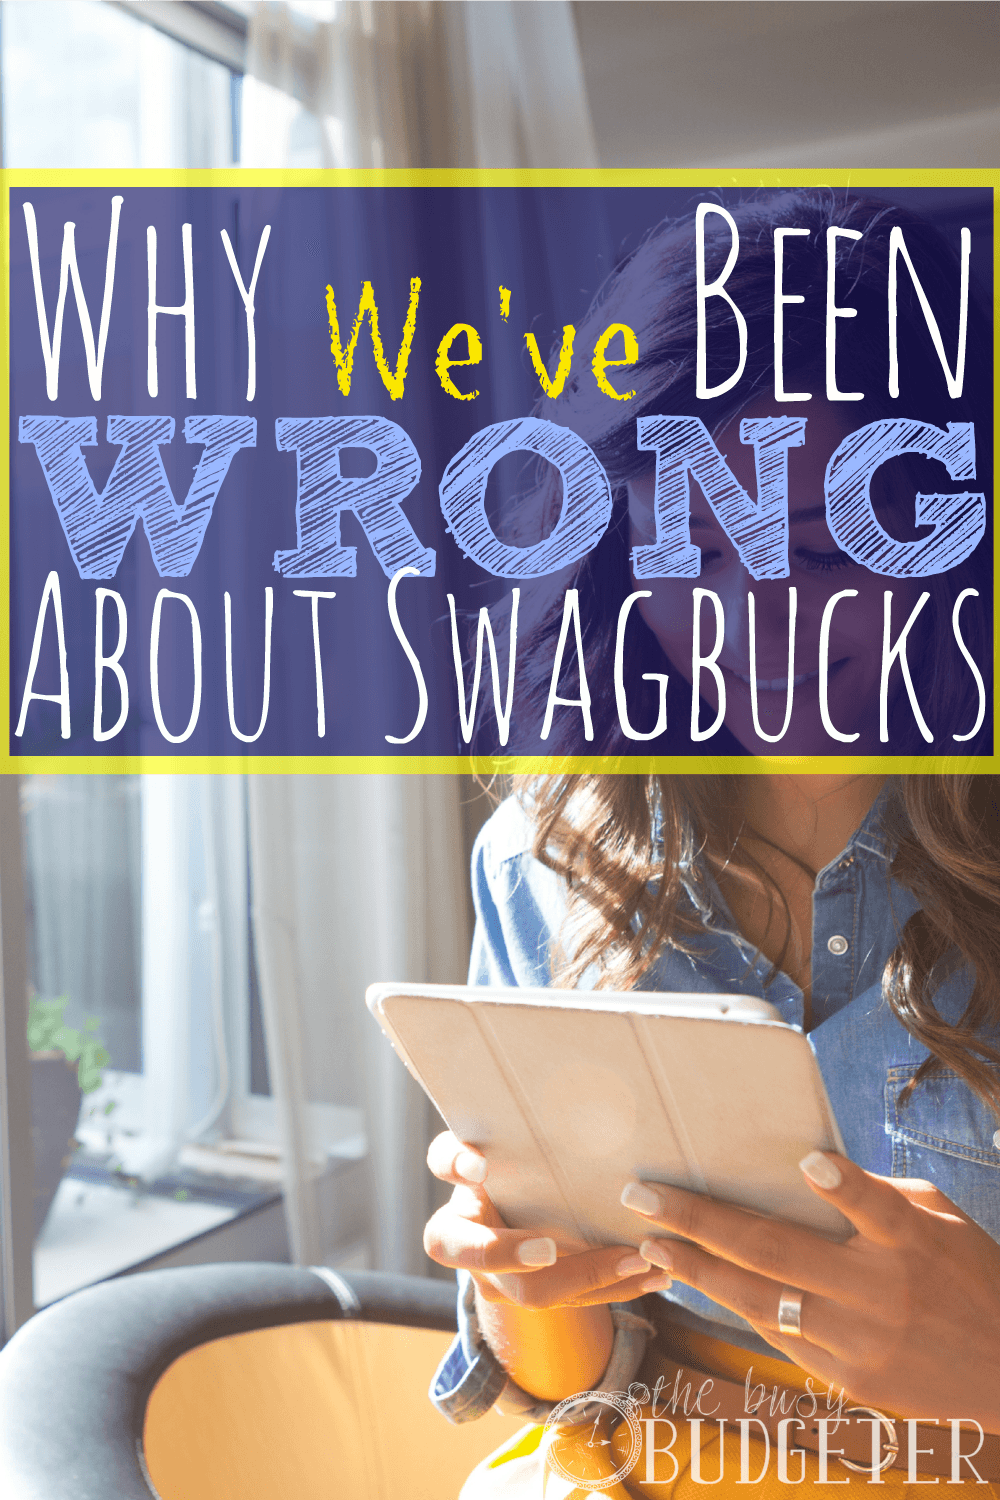 Earn 1000 swagbucks a day - Why We Ve Been Wrong About Swagbucks From A Non Believer